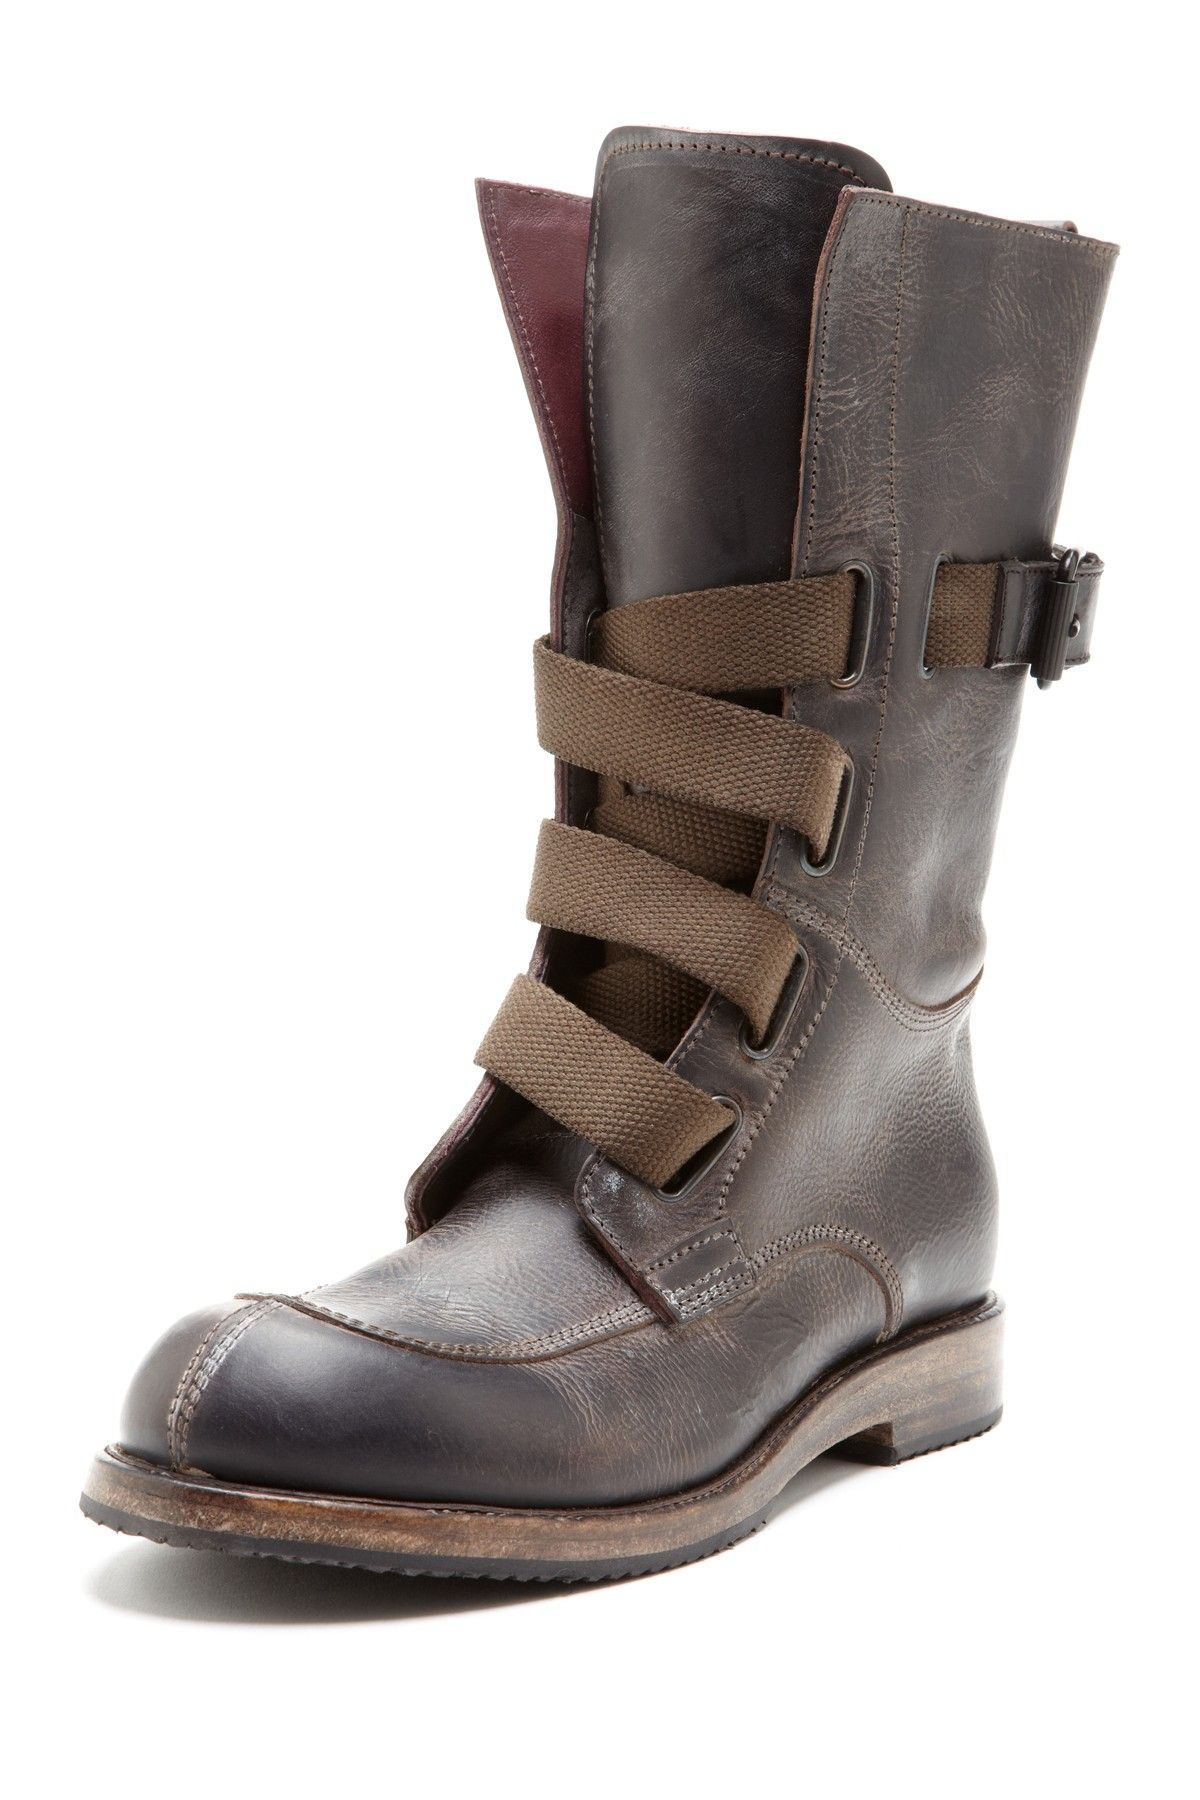 i.am Leather High Top Work Boot with Canvas Straps Office shoes ... b09c3b11ba51